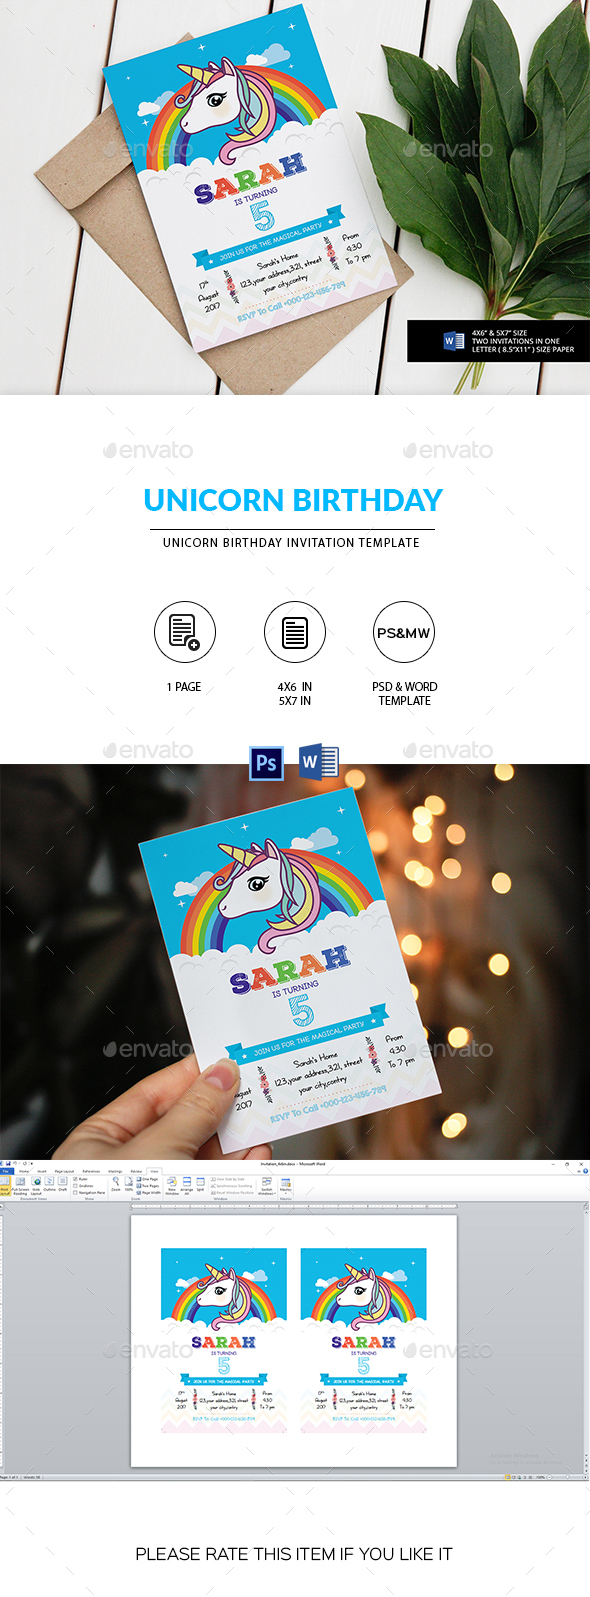 Unicorn Birthday Party Invitation Template by smmrdesign | GraphicRiver